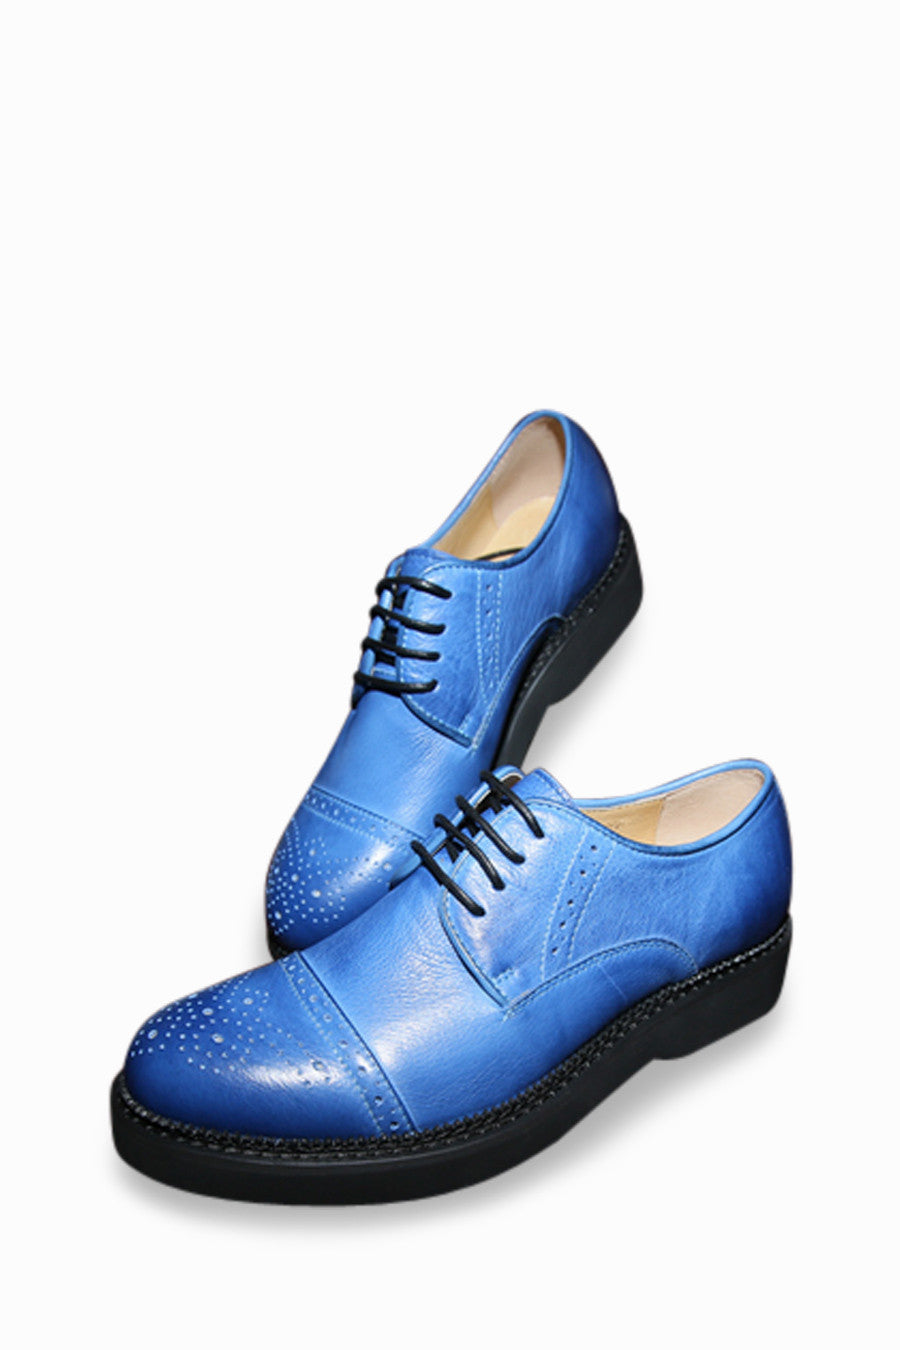 Retro Blue Loafers